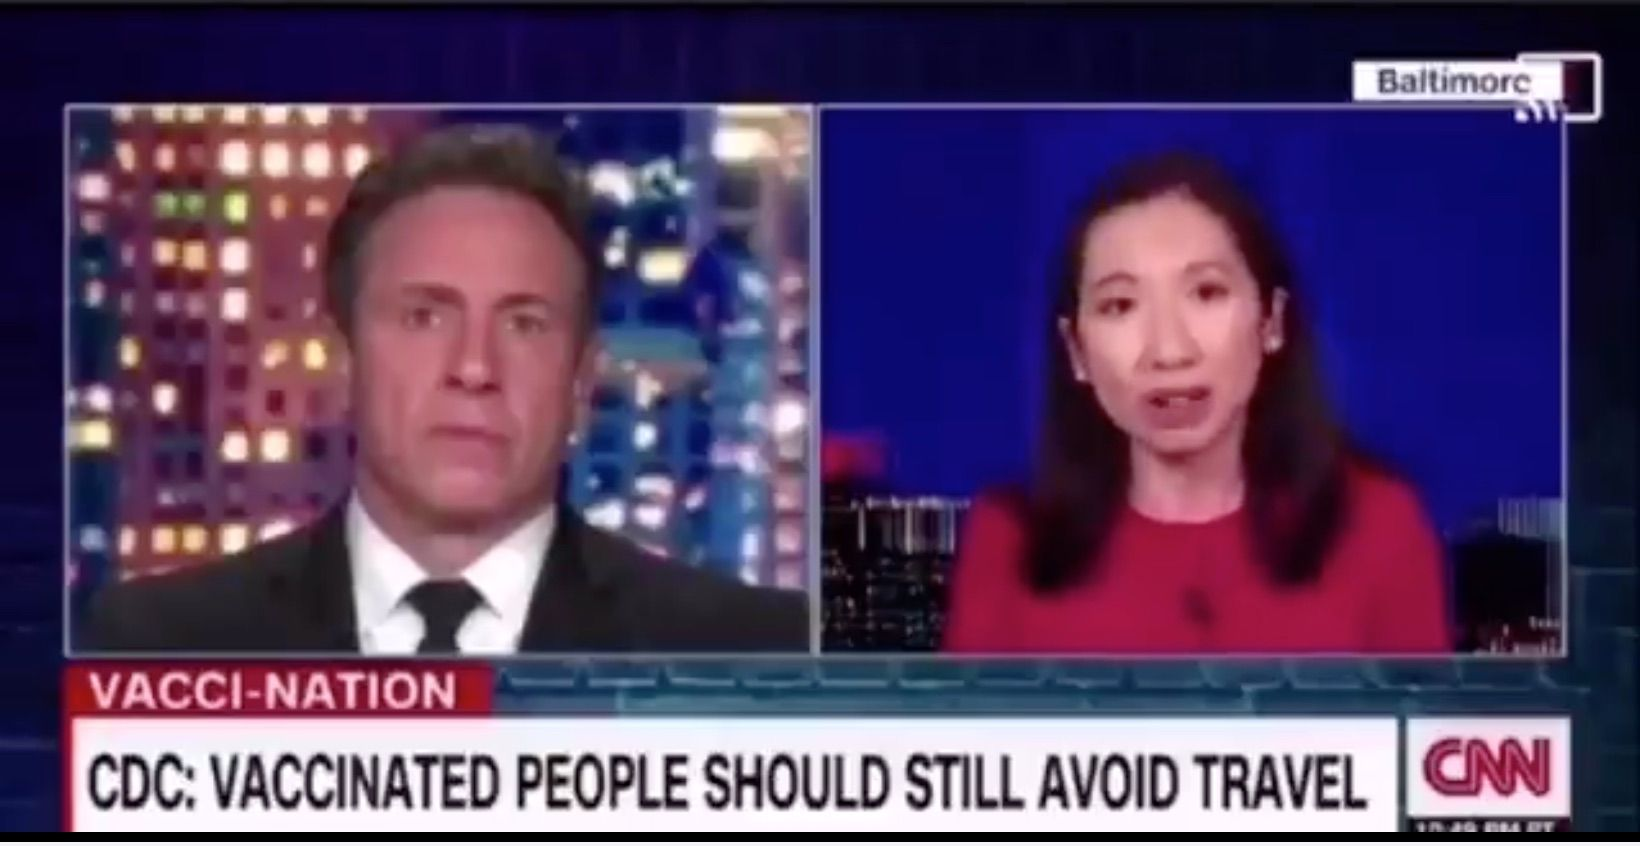 CNN 'expert' proposes withholding Americans' basic freedoms if they don't get vaccine